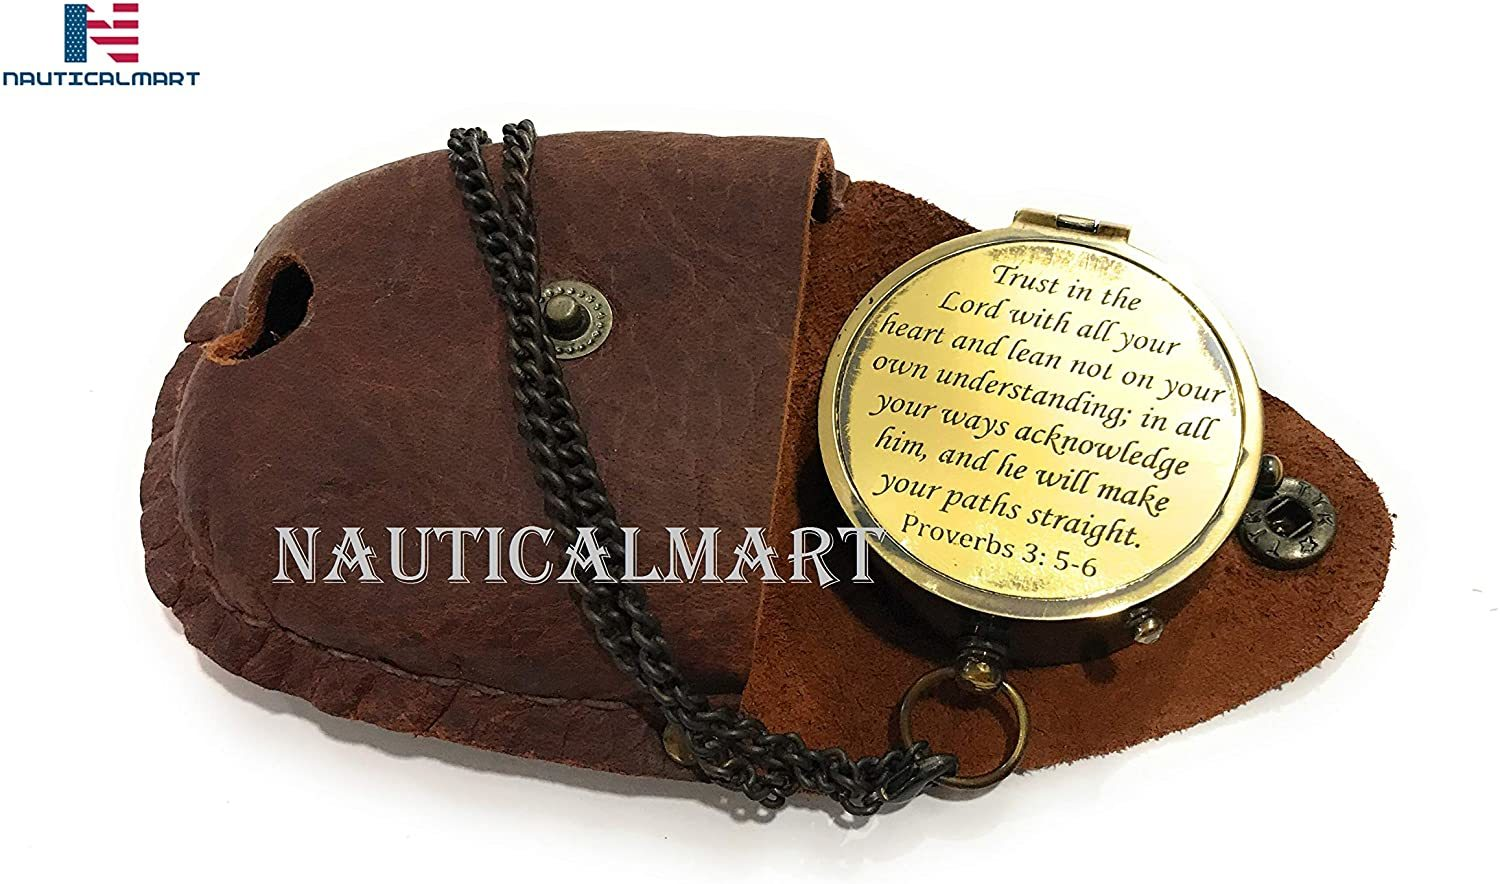 NauticalMart Brass Compass Trust in The Lord with All Your Heart Engraved Compass, Proverbs 3: 5-16